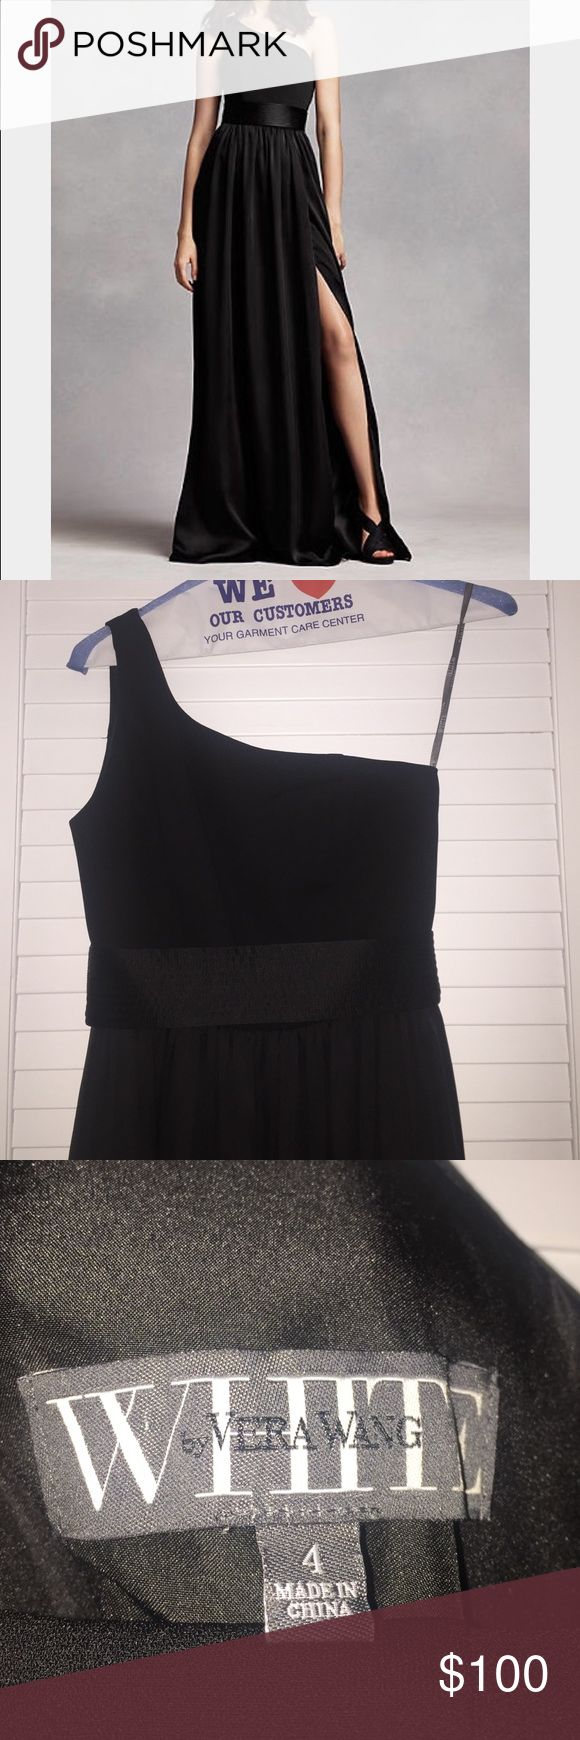 "Vera Wang Bridesmaid Black One Strap Dress Vera Wang black one shoulder bridesmaid dress. Size 4 only worn ONCE. I am 5' 4"" and weigh 125 pounds...beautiful dress. Very comfortable and classy. Vera Wang Dresses One Shoulder"